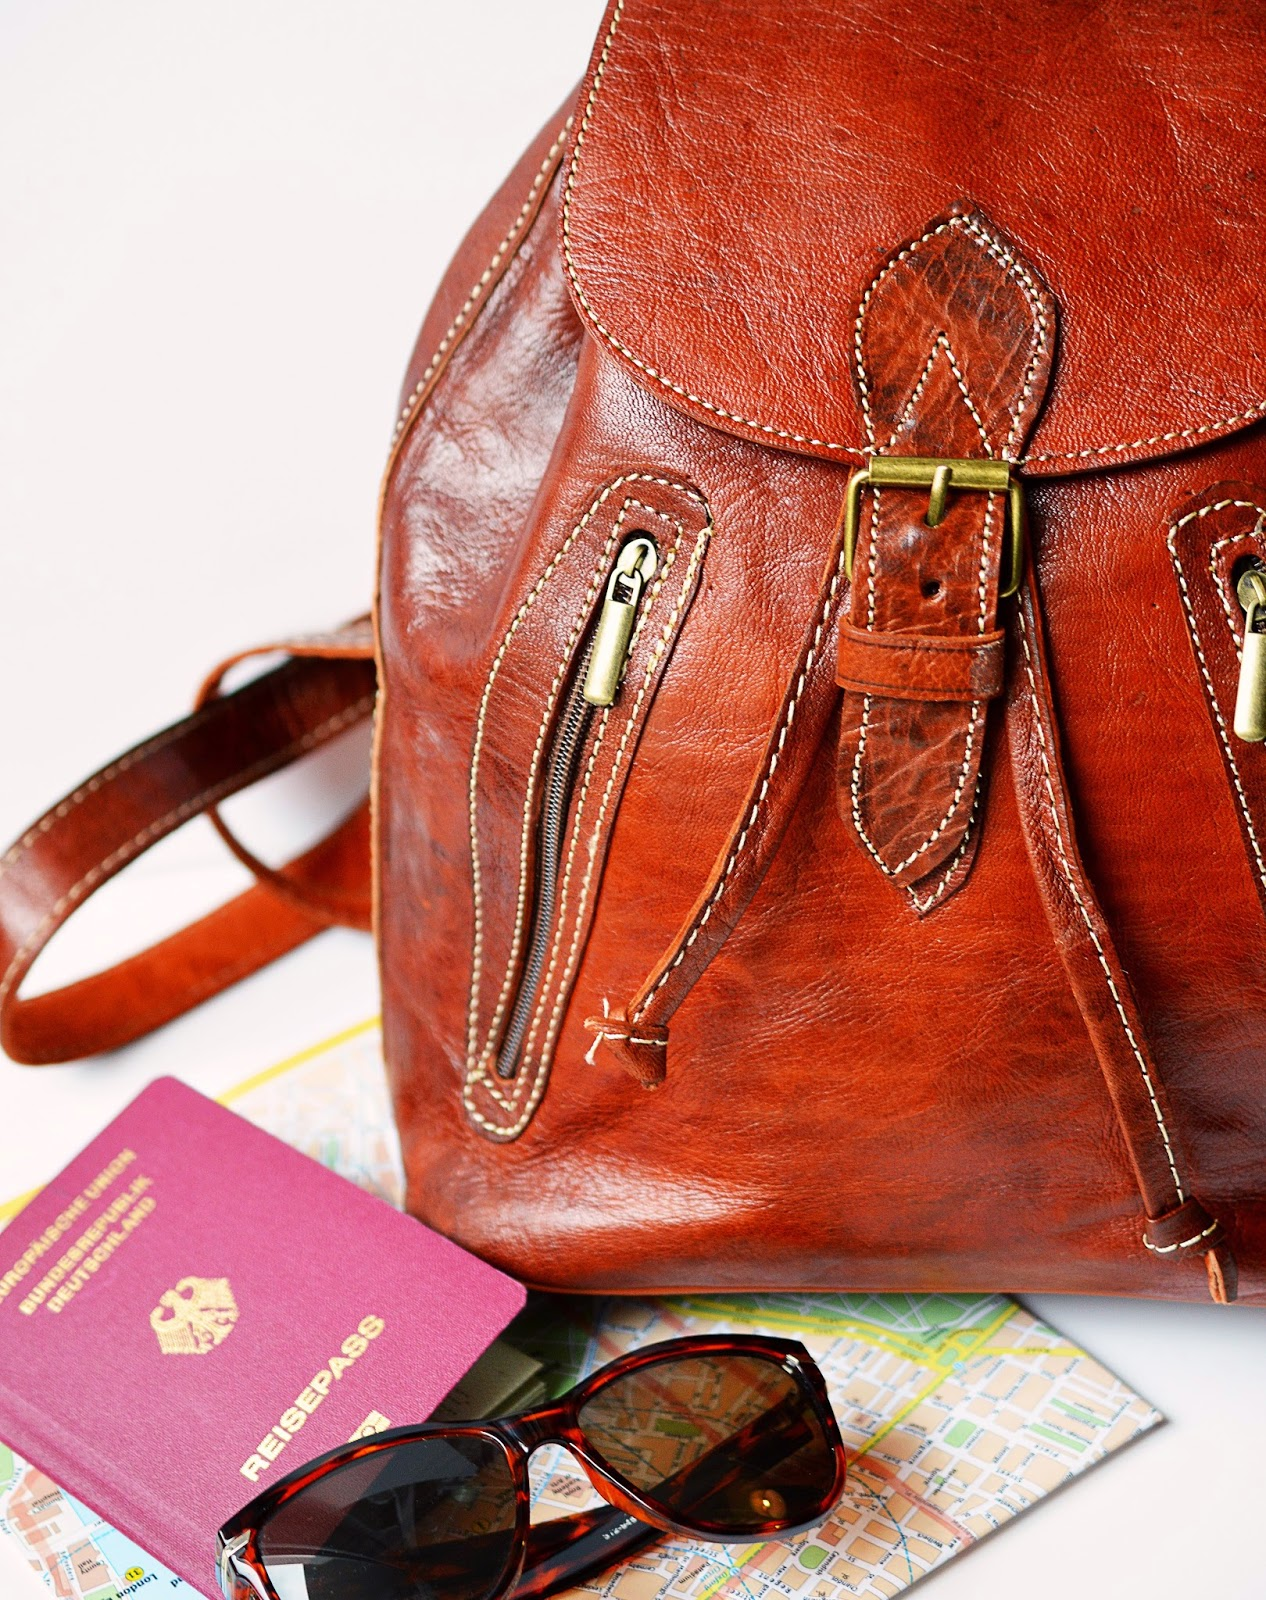 In-Flight Travel Essentials | Motte's Blog